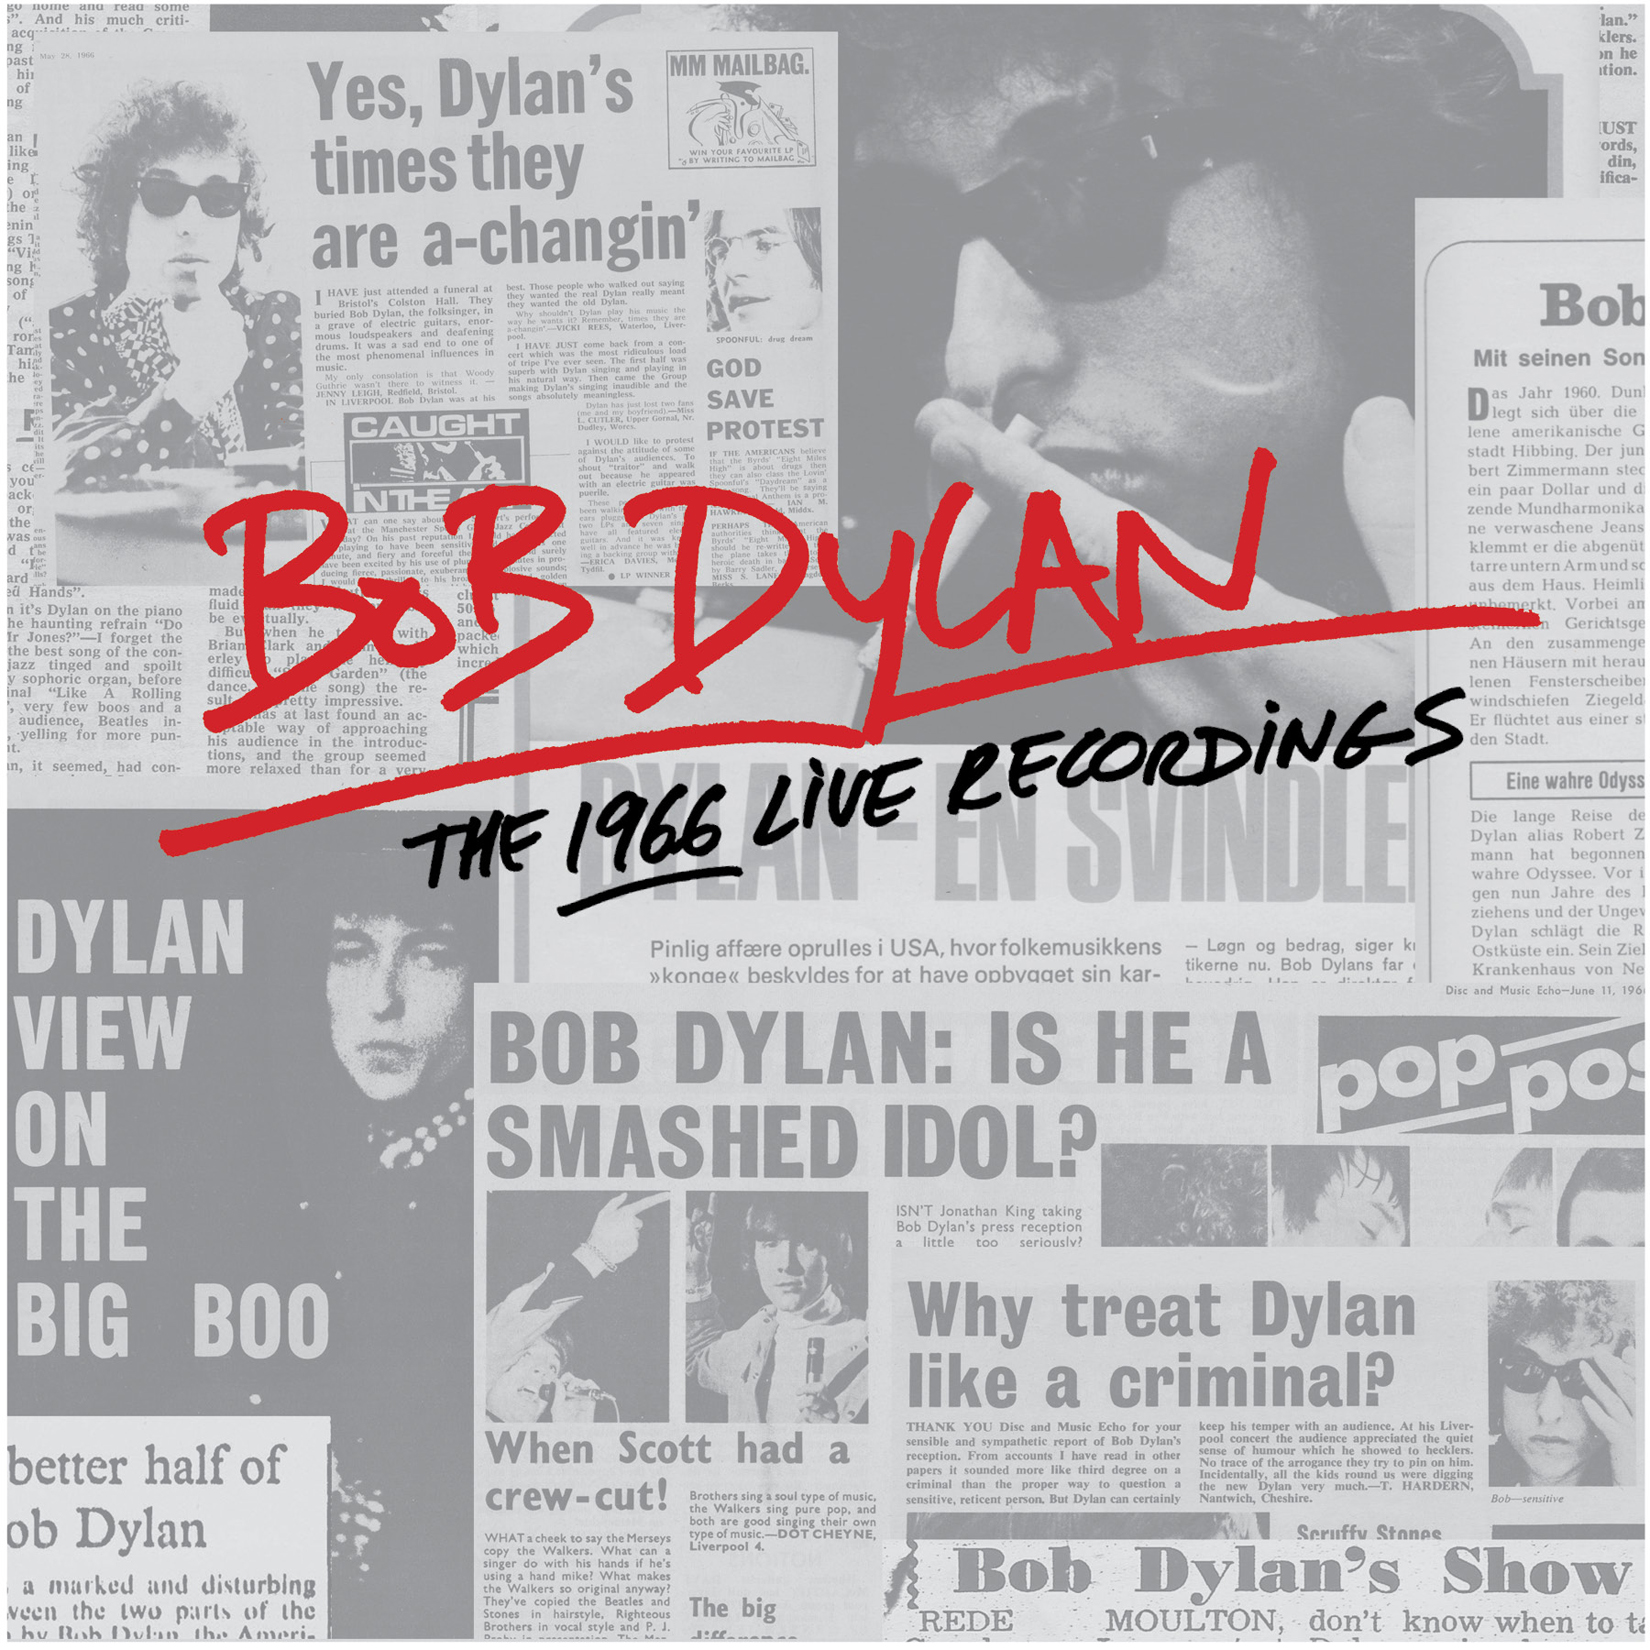 DYLAN The 1966 Live Recordings Album Artwork